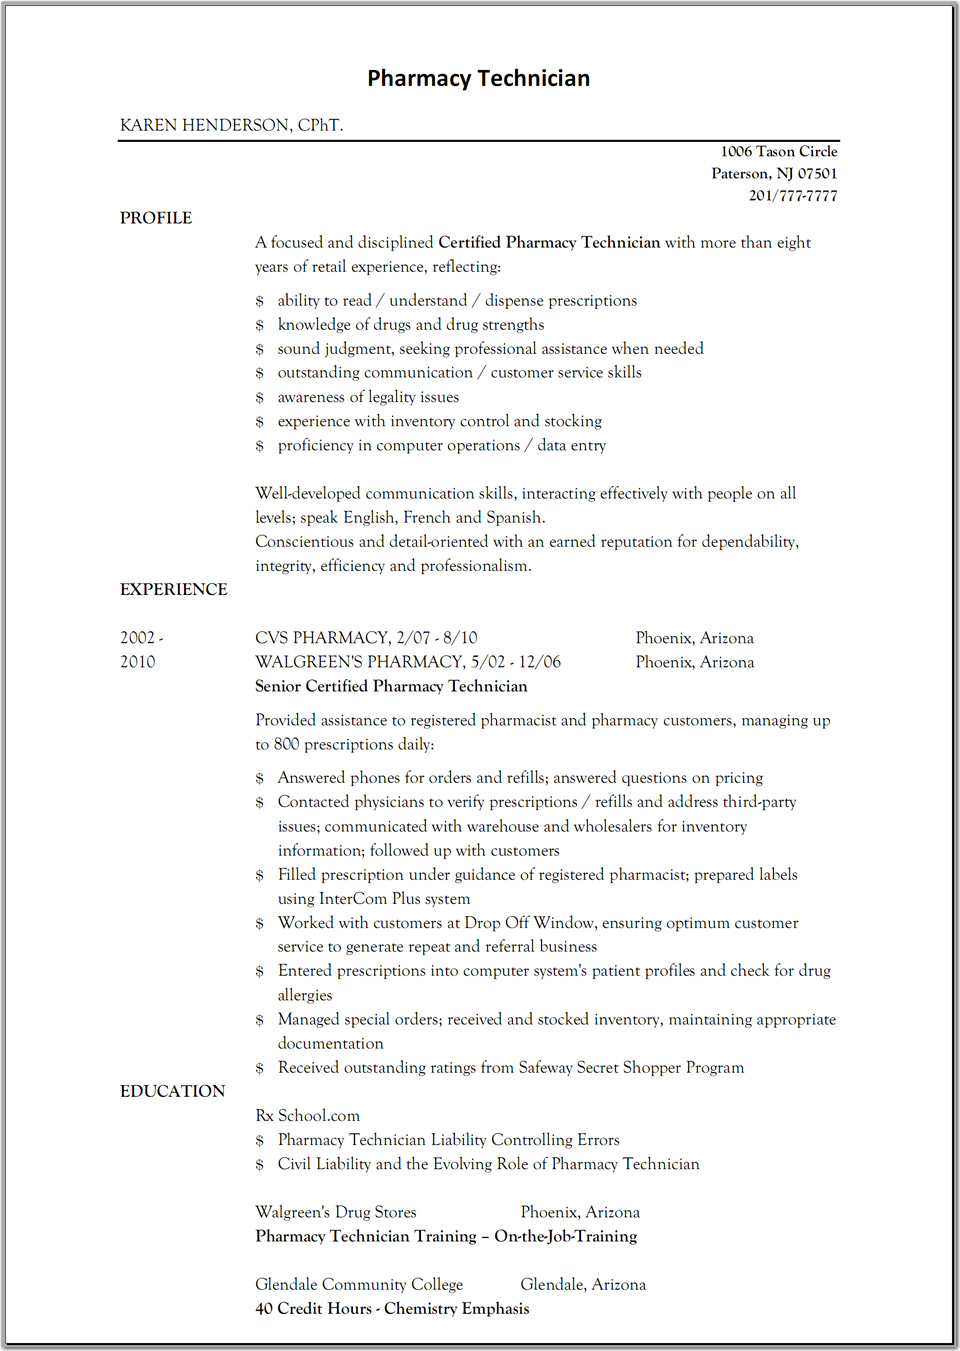 hospital pharmacist resume examples profile experience samplebusinessresumecom samplebusinessresumecom